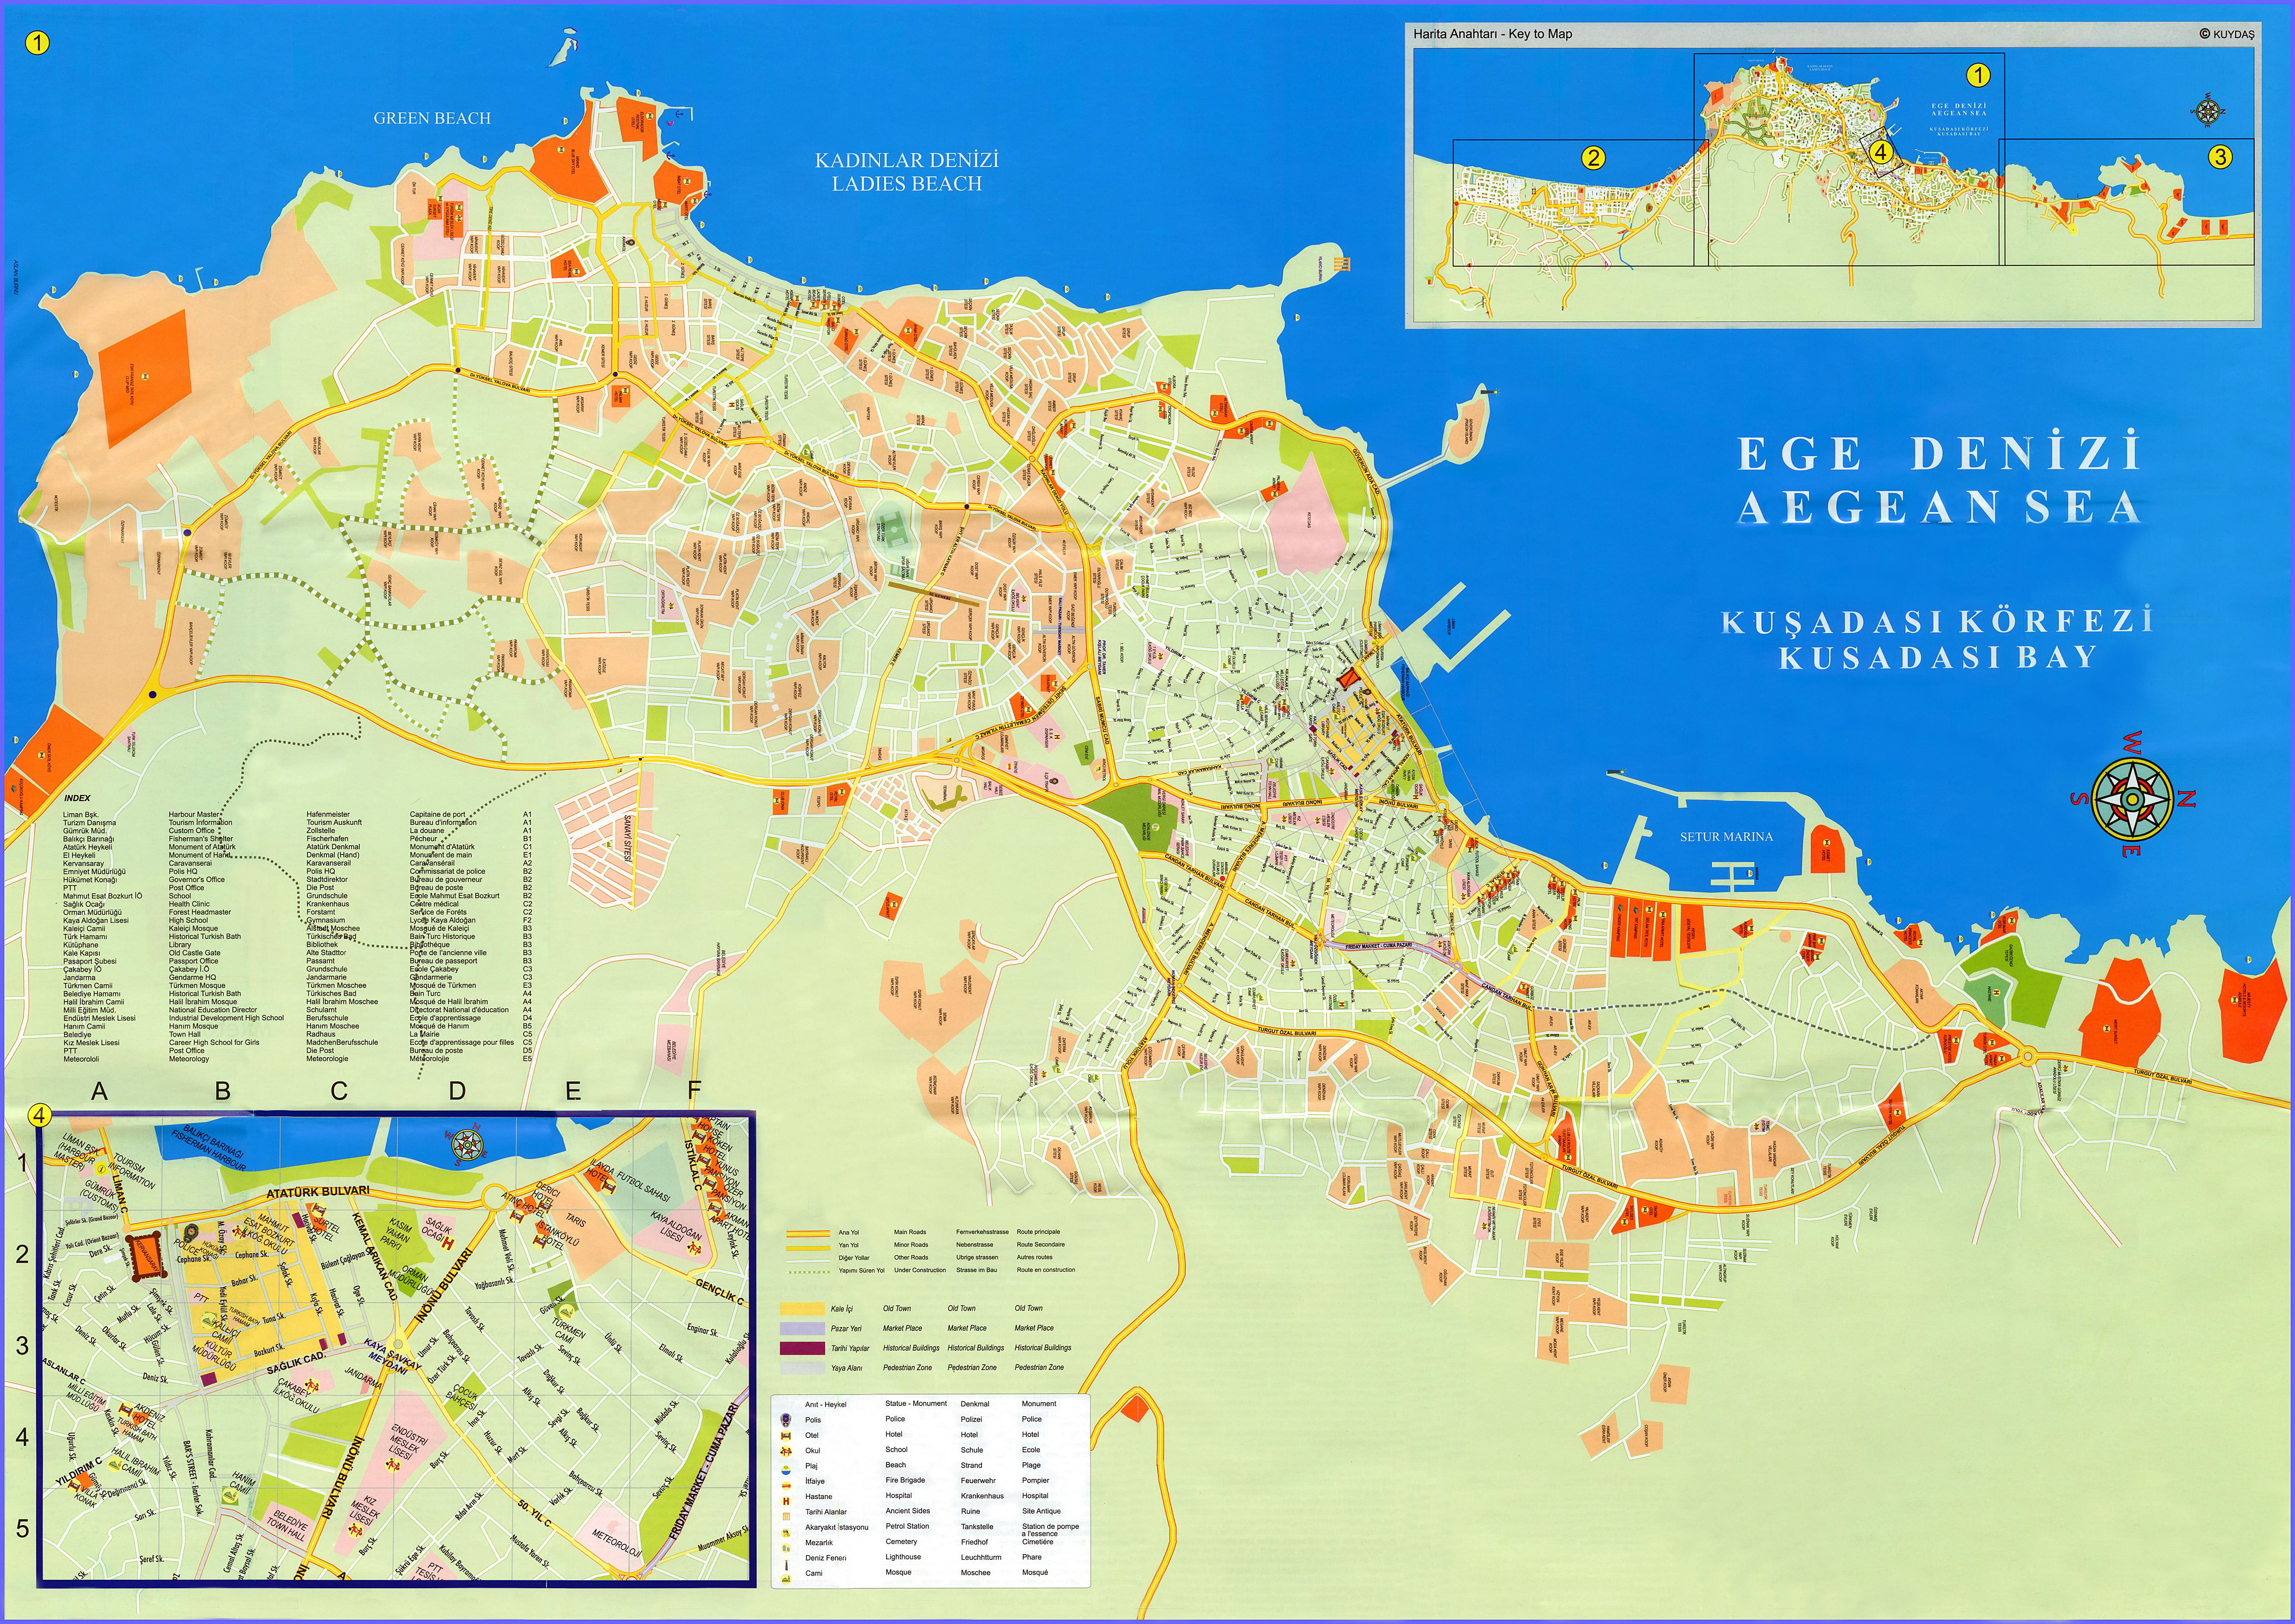 Large Kusadasi Maps For Free Download And Print HighResolution - High Resolution Us Map Download